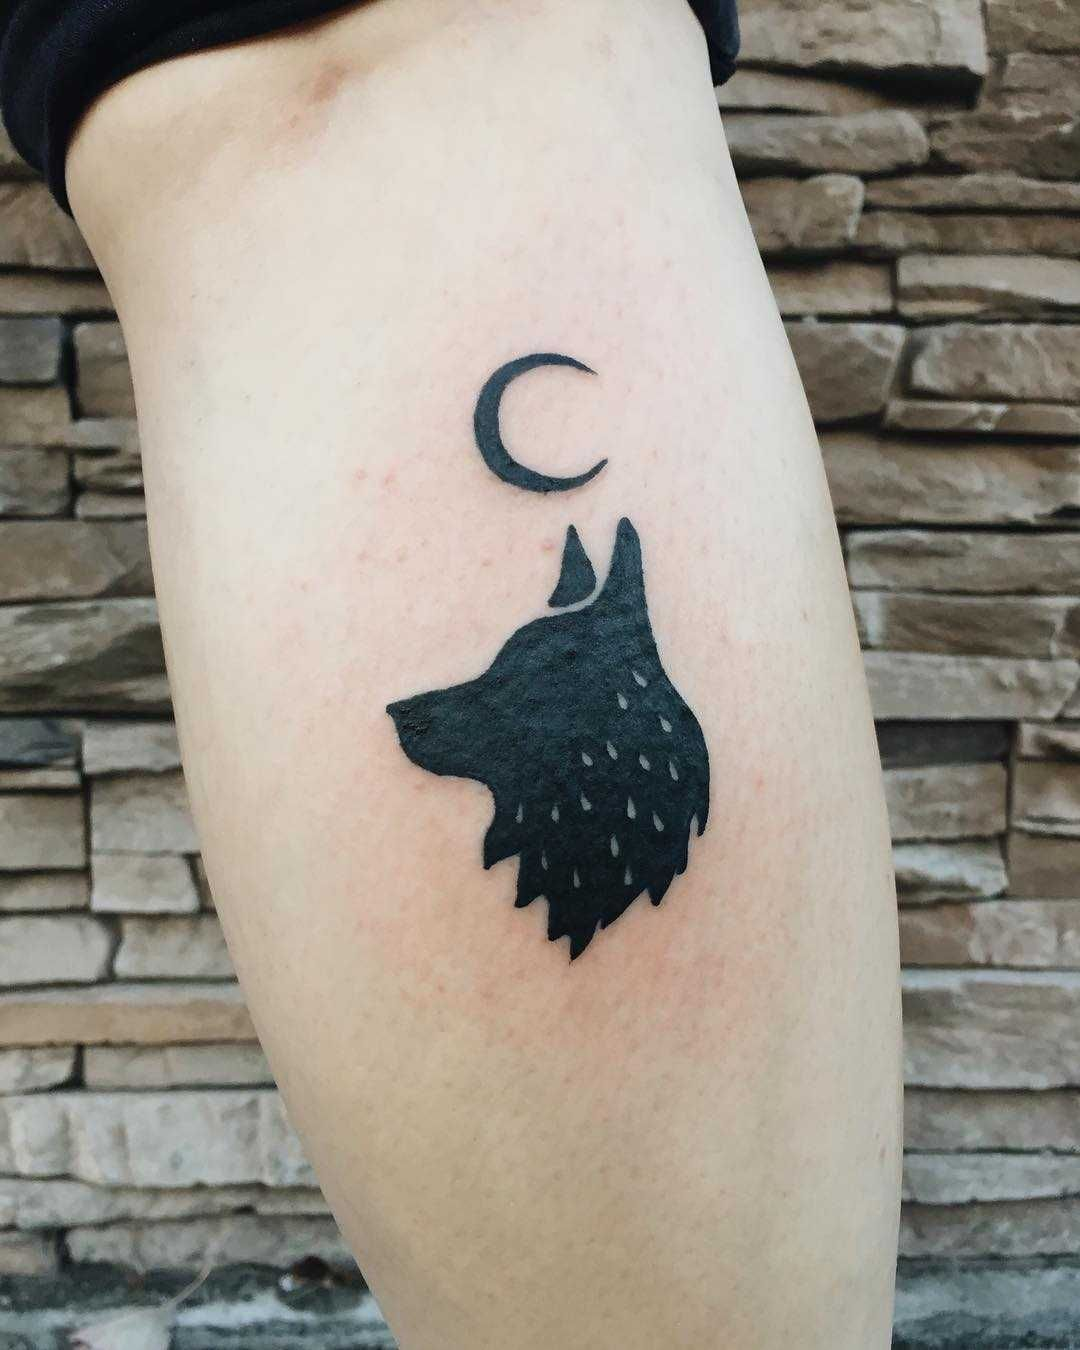 Represent Your Wolf Pack With These 2 Full Moon Tattoos Easy Application Lasting 2 5 Days Measures 2 I Full Moon Tattoo Moon Tattoo Designs Temporary Tattoos